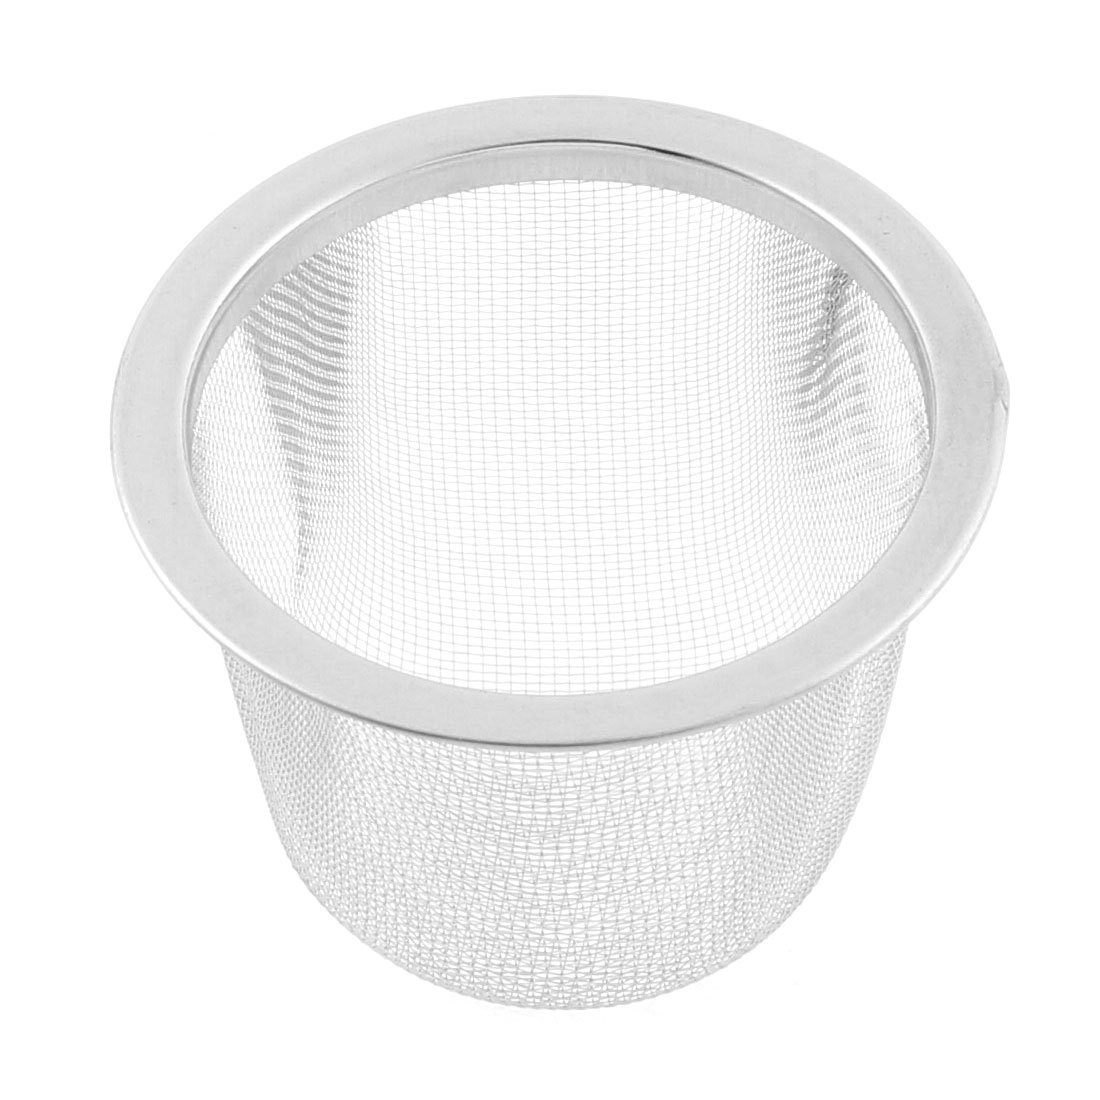 Stainless Steel Household Mesh Tea Infuser Strainer Basket 60mm Dia uxcell SYNCELEC007221